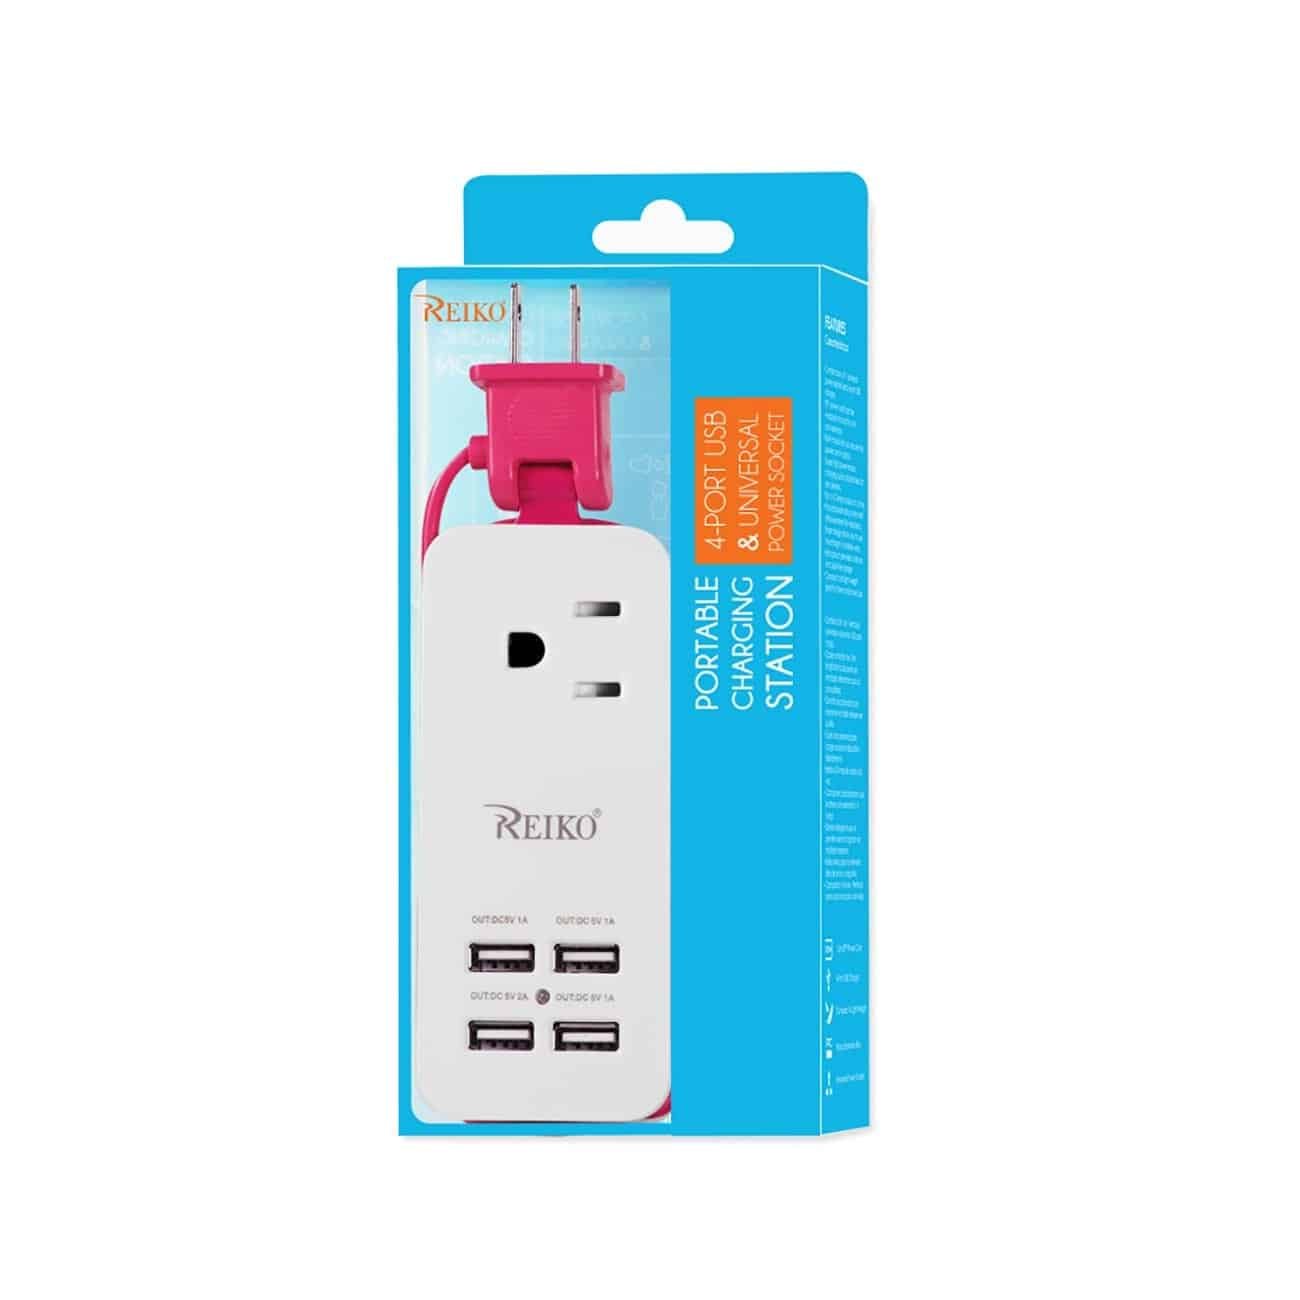 4 AMP HOME TRAVEL CHARGING STATION IN HOT PINK